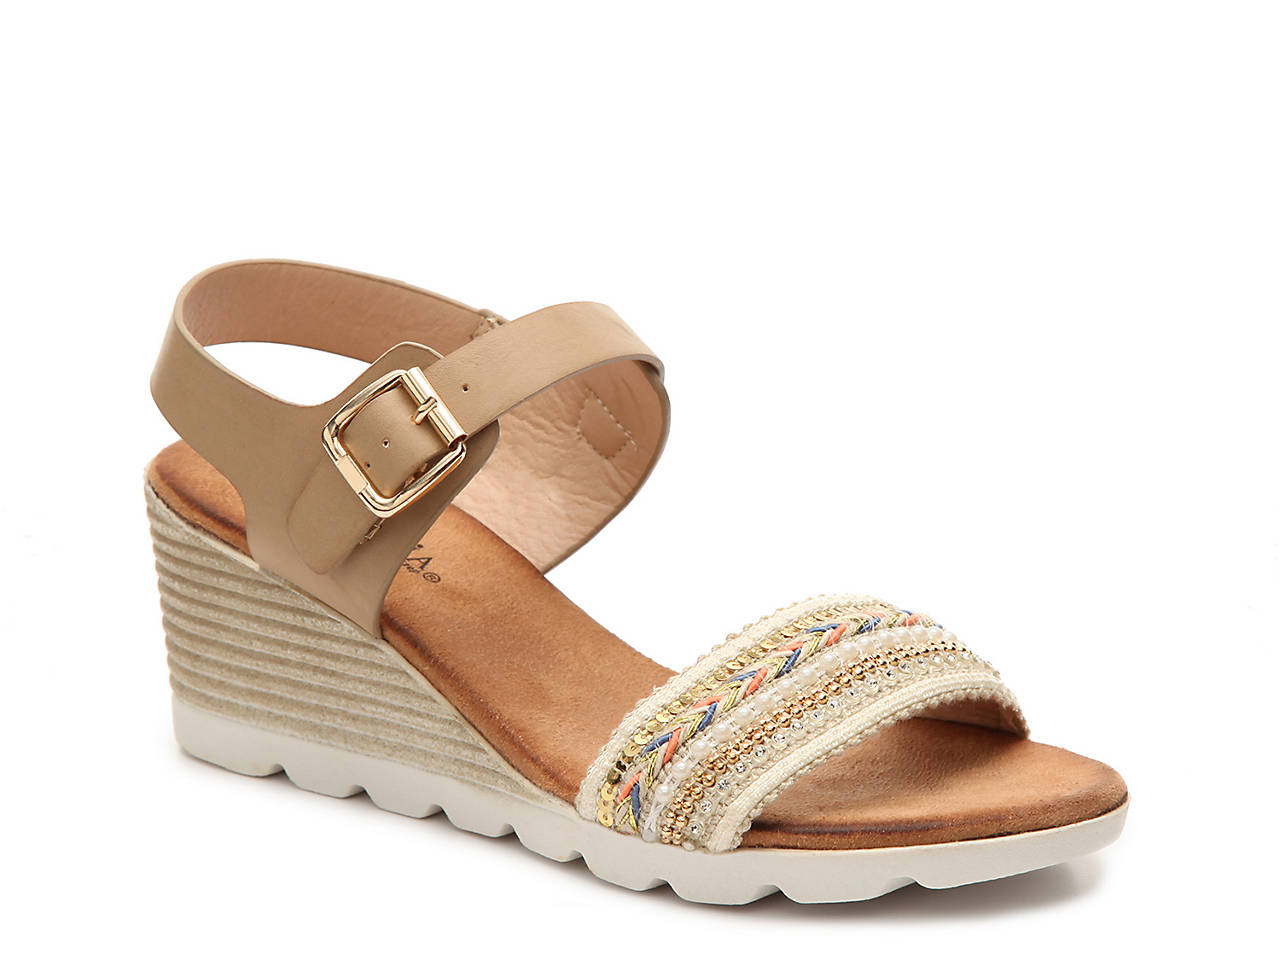 875ca487c244 Patrizia by Spring Step June Wedge Sandal Women s Shoes